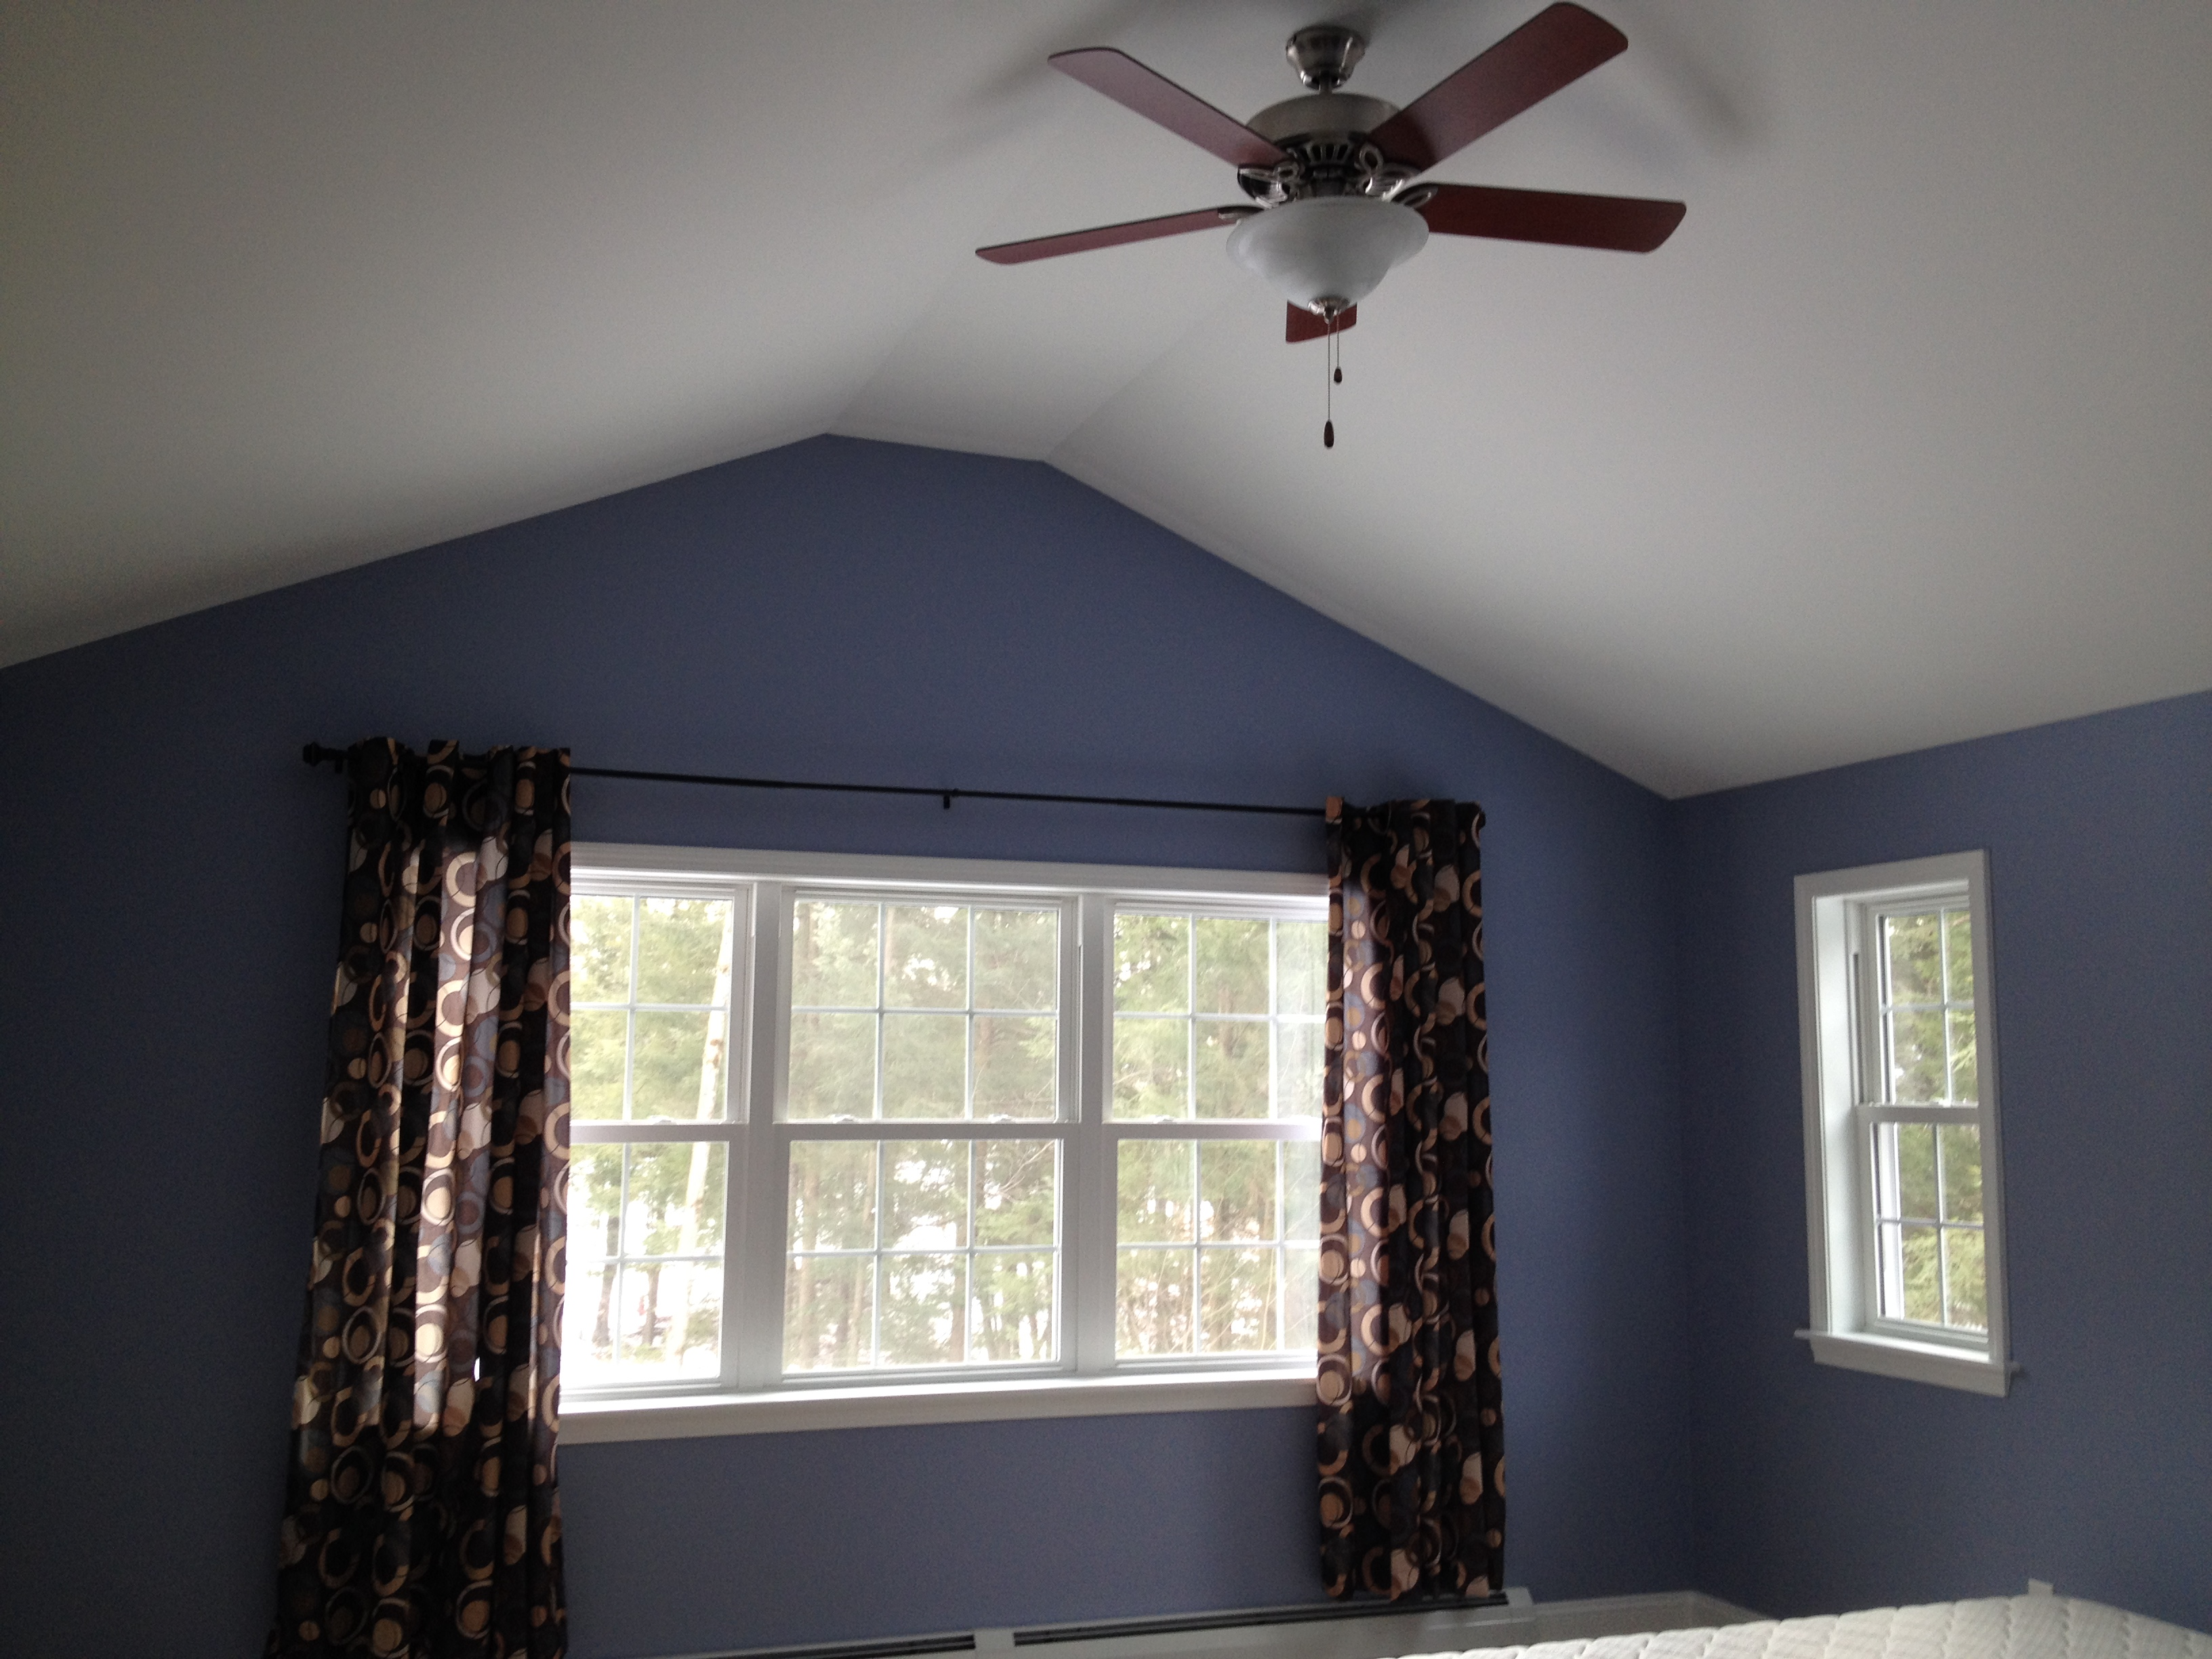 Vaulted ceiling with fan